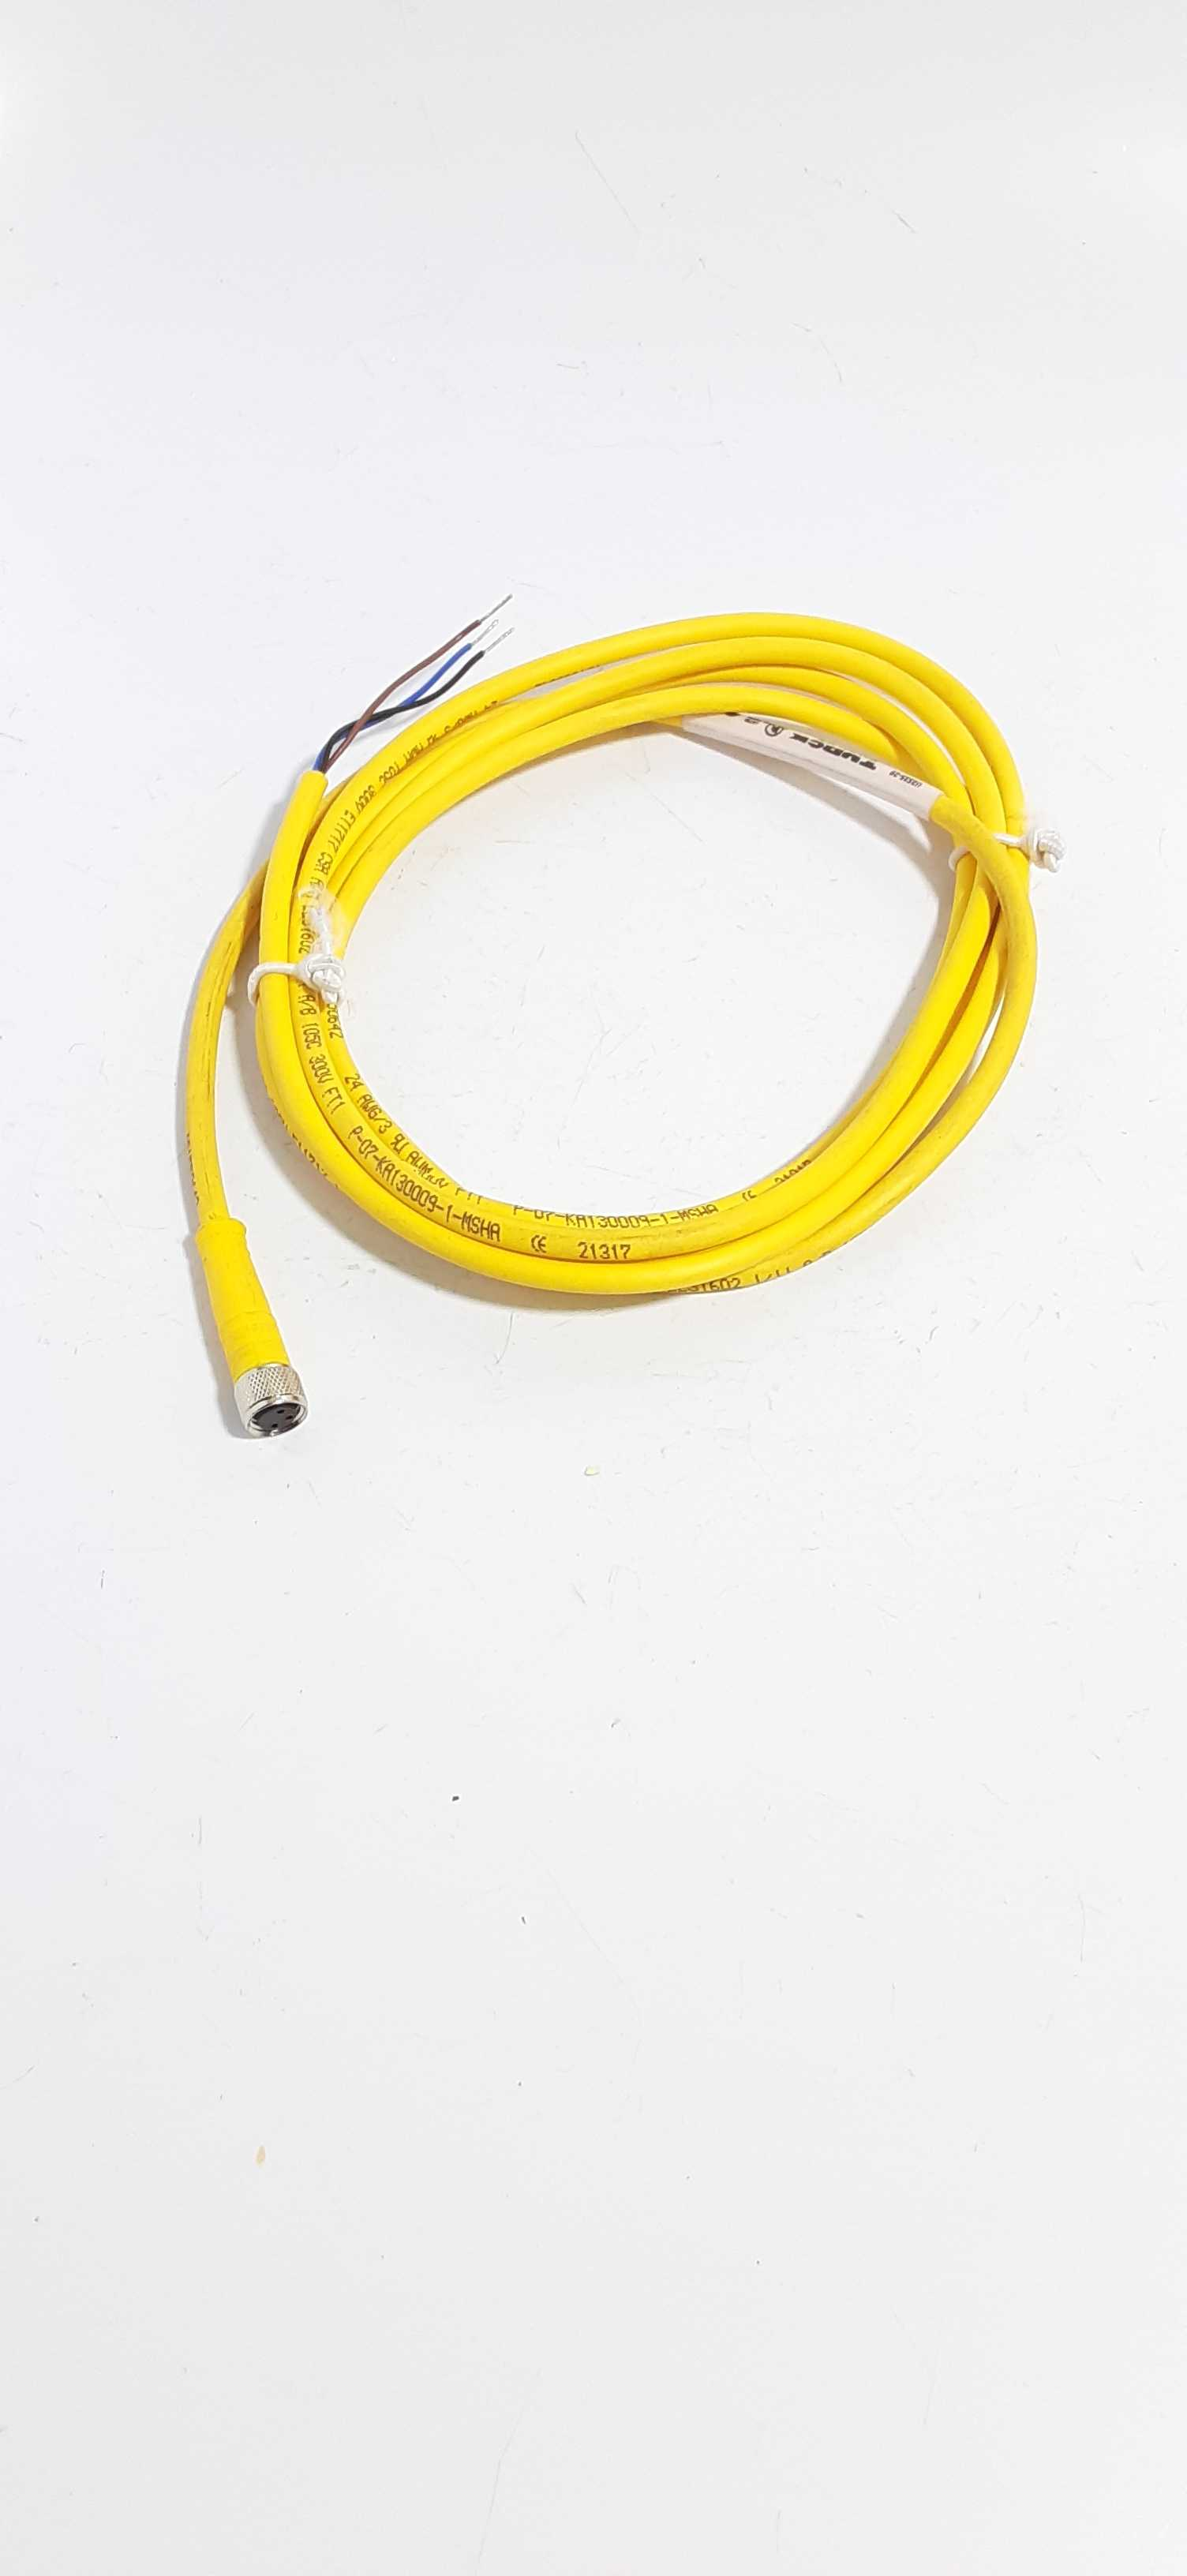 Turck PKG 3M-2 Female to Cut-end Yellow Cordset